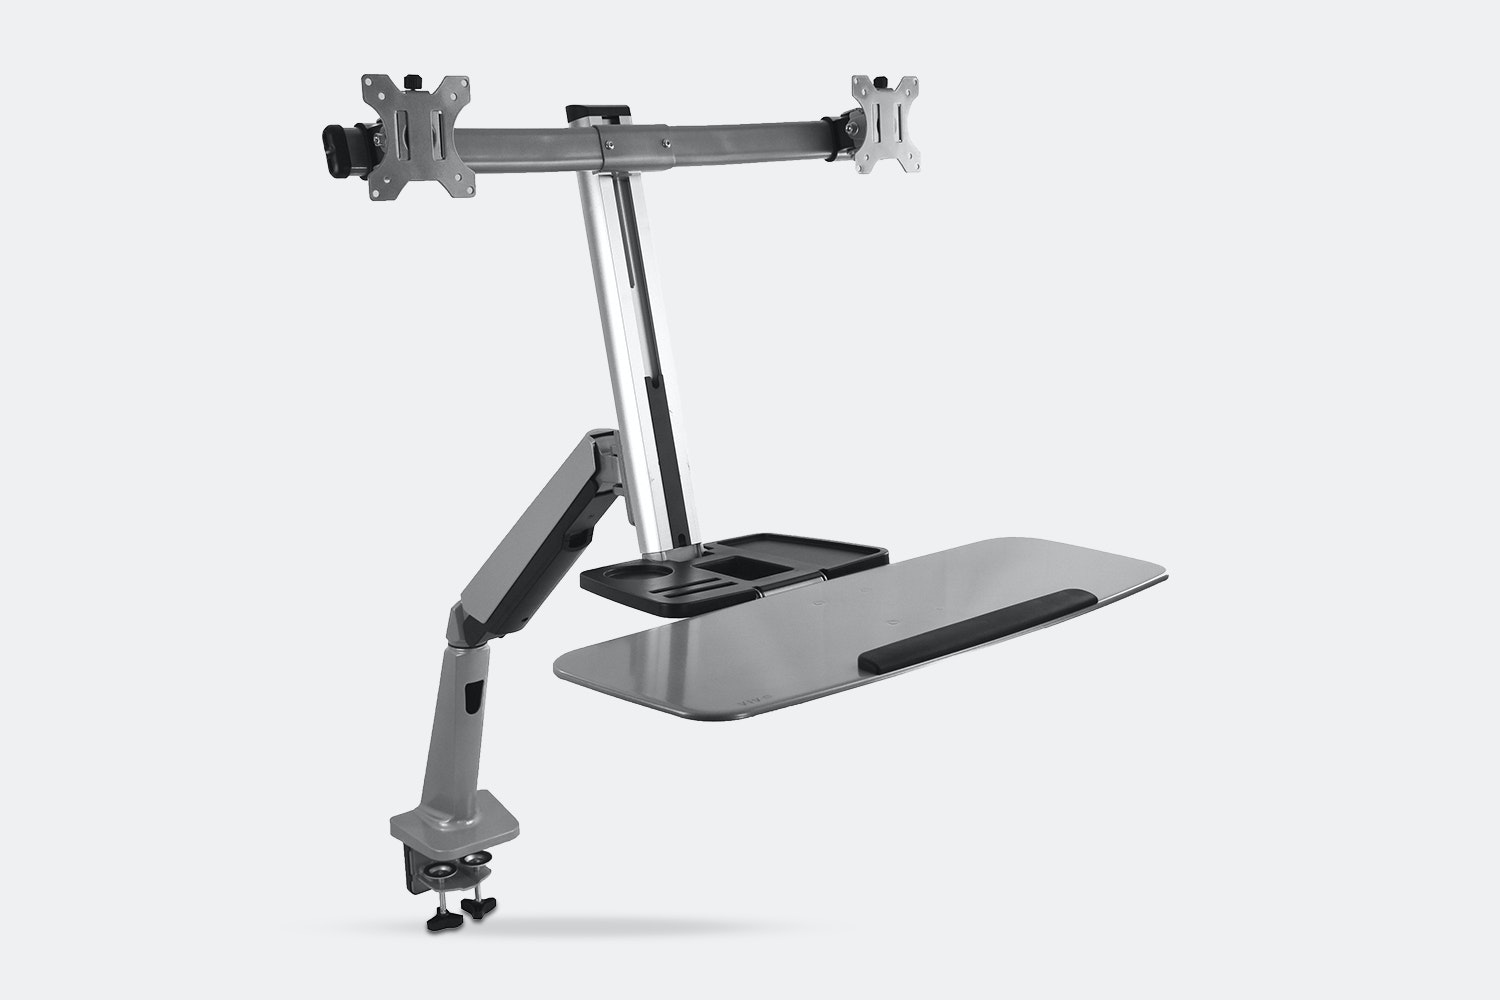 Dual Monitor/Keyboard Sit/Stand Desk Mount